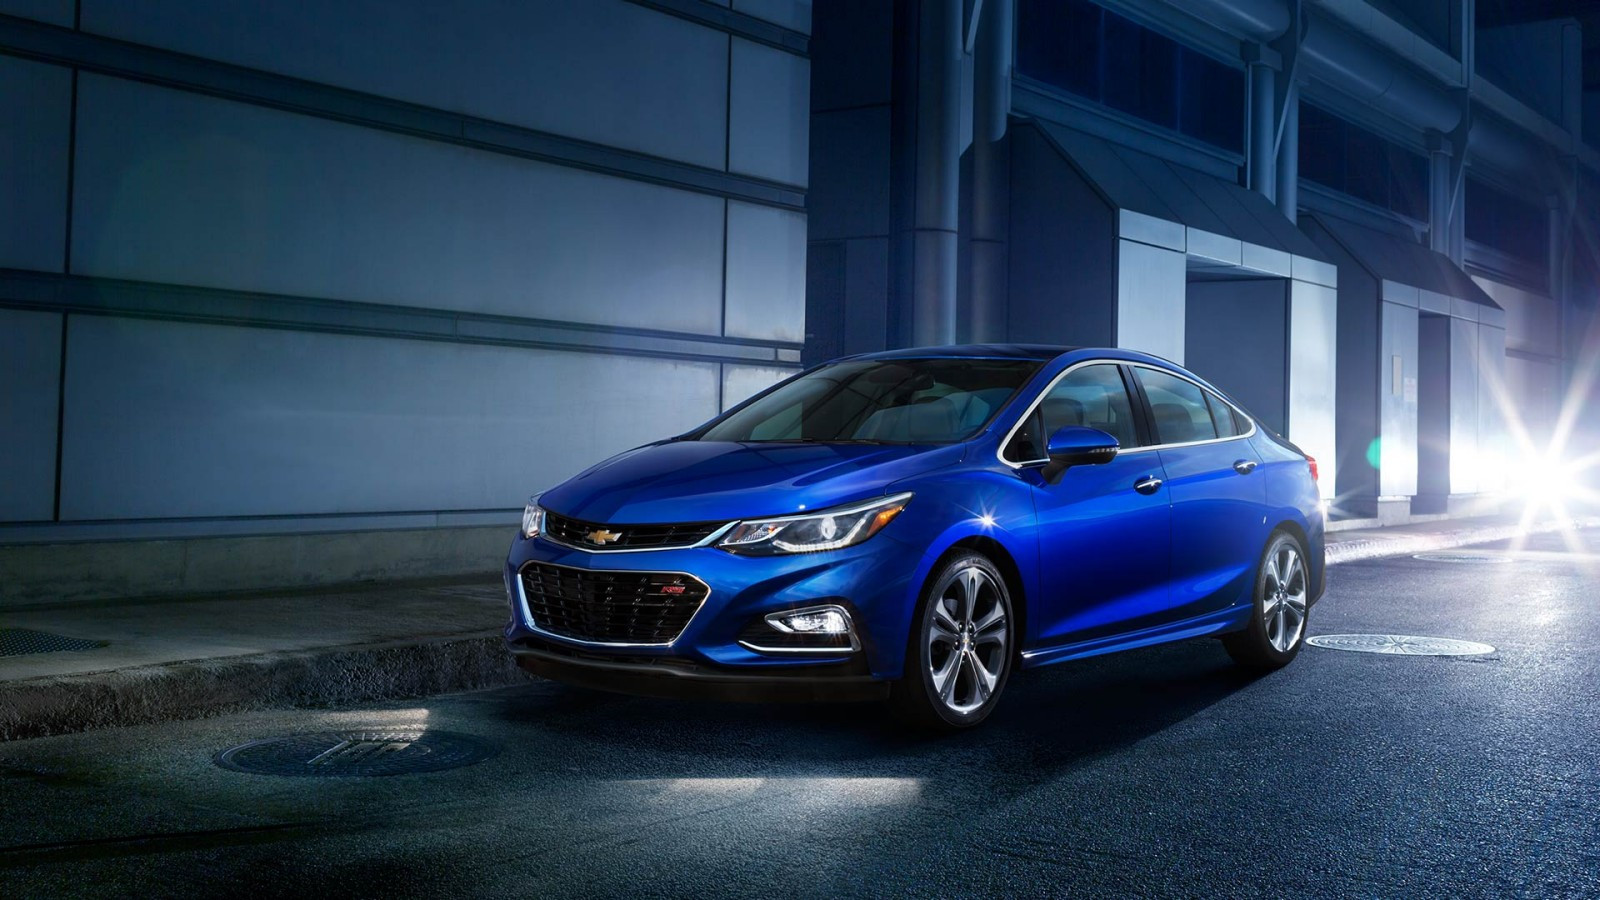 2017 chevy cruze for sale near denver, co - medved castle rock